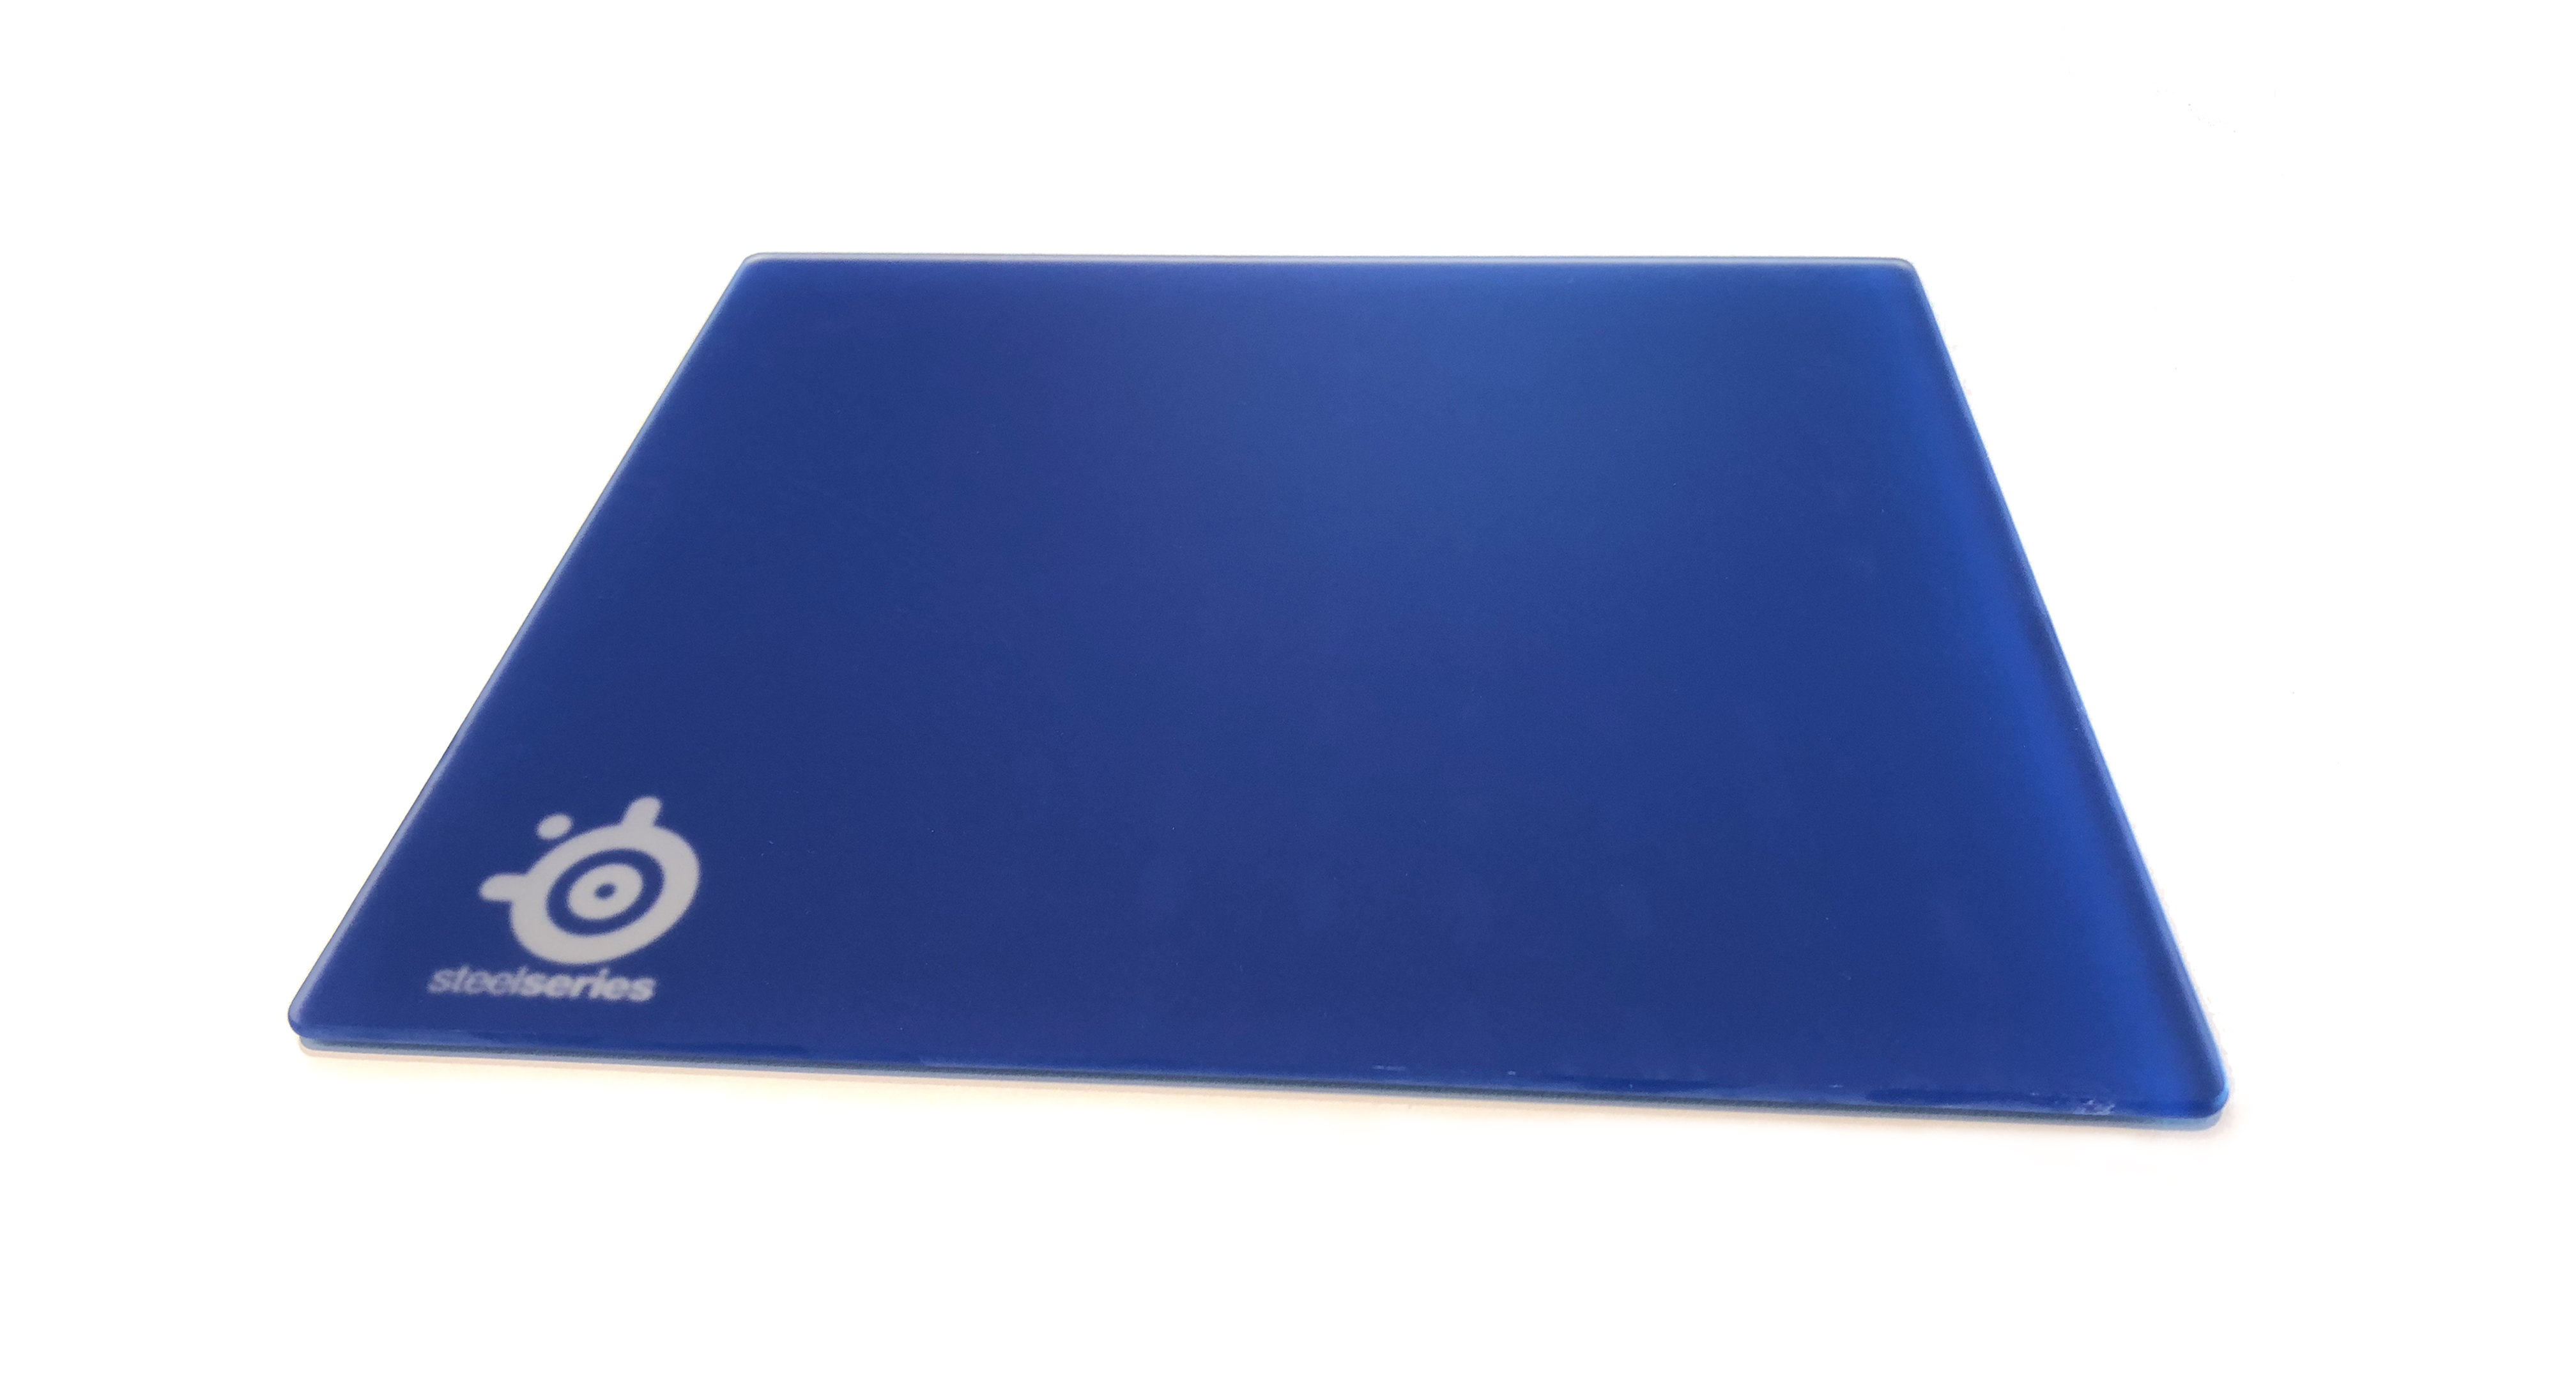 SteelSeries Mousepad Icemat